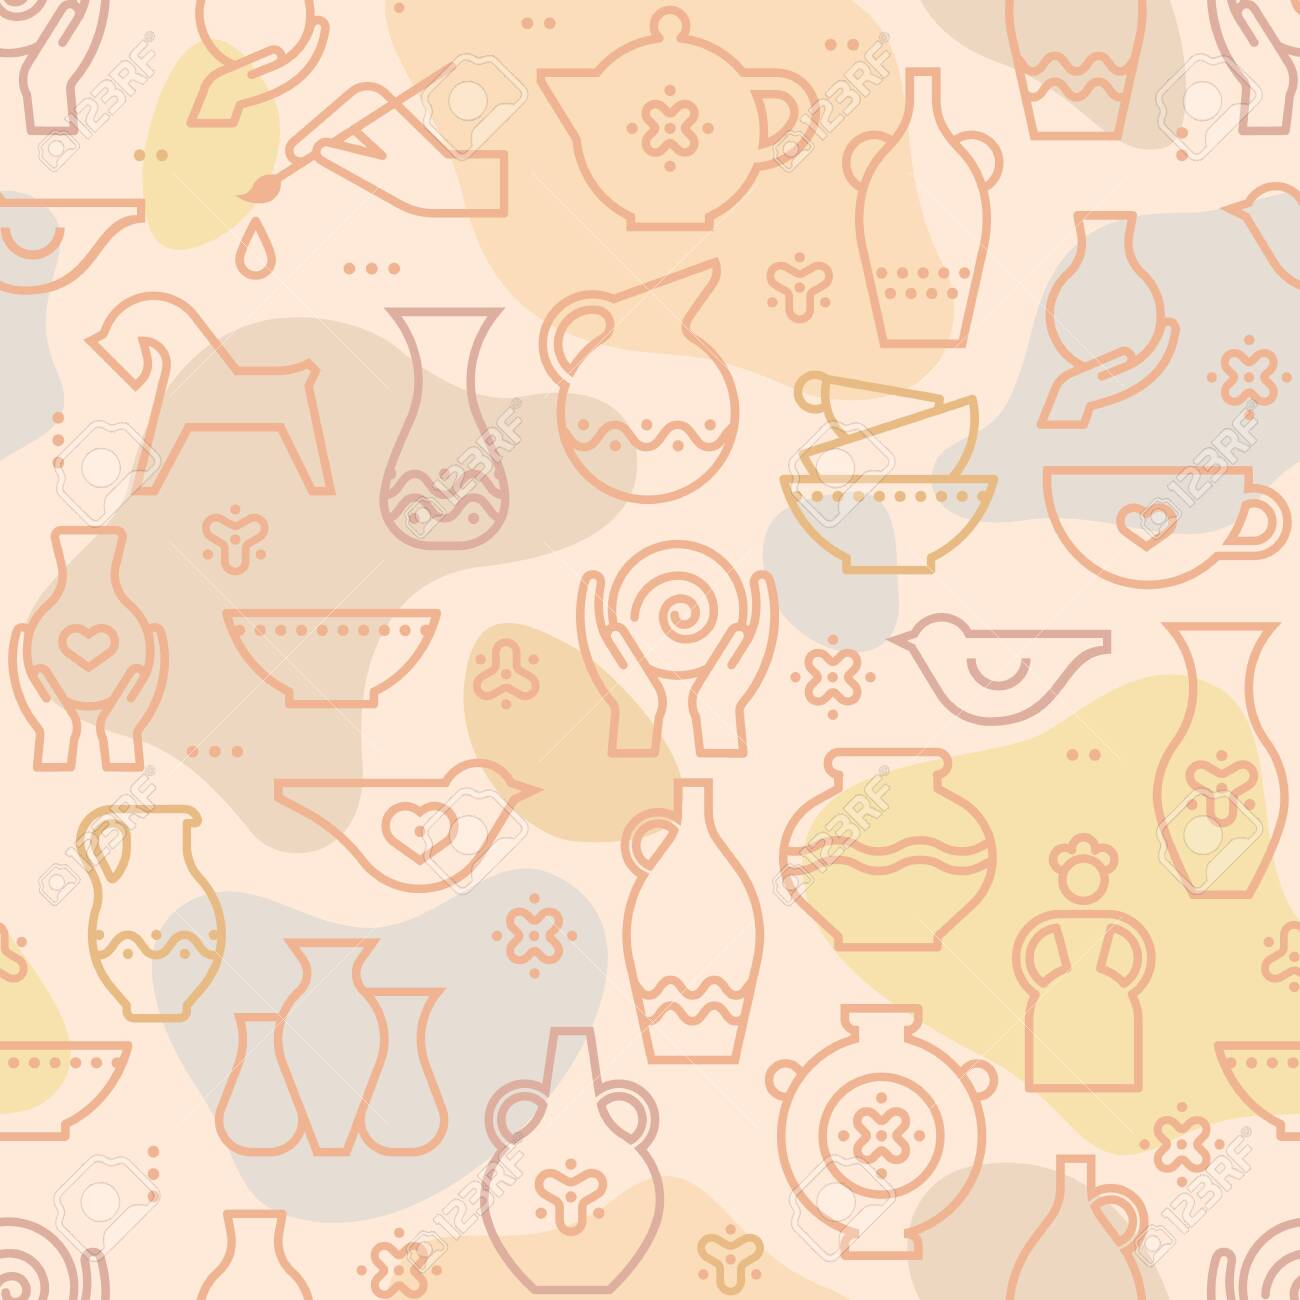 Vector Pottery Seamless Pattern Ceramics For Art Studio Design Royalty Free Cliparts Vectors And Stock Illustration Image 140722160